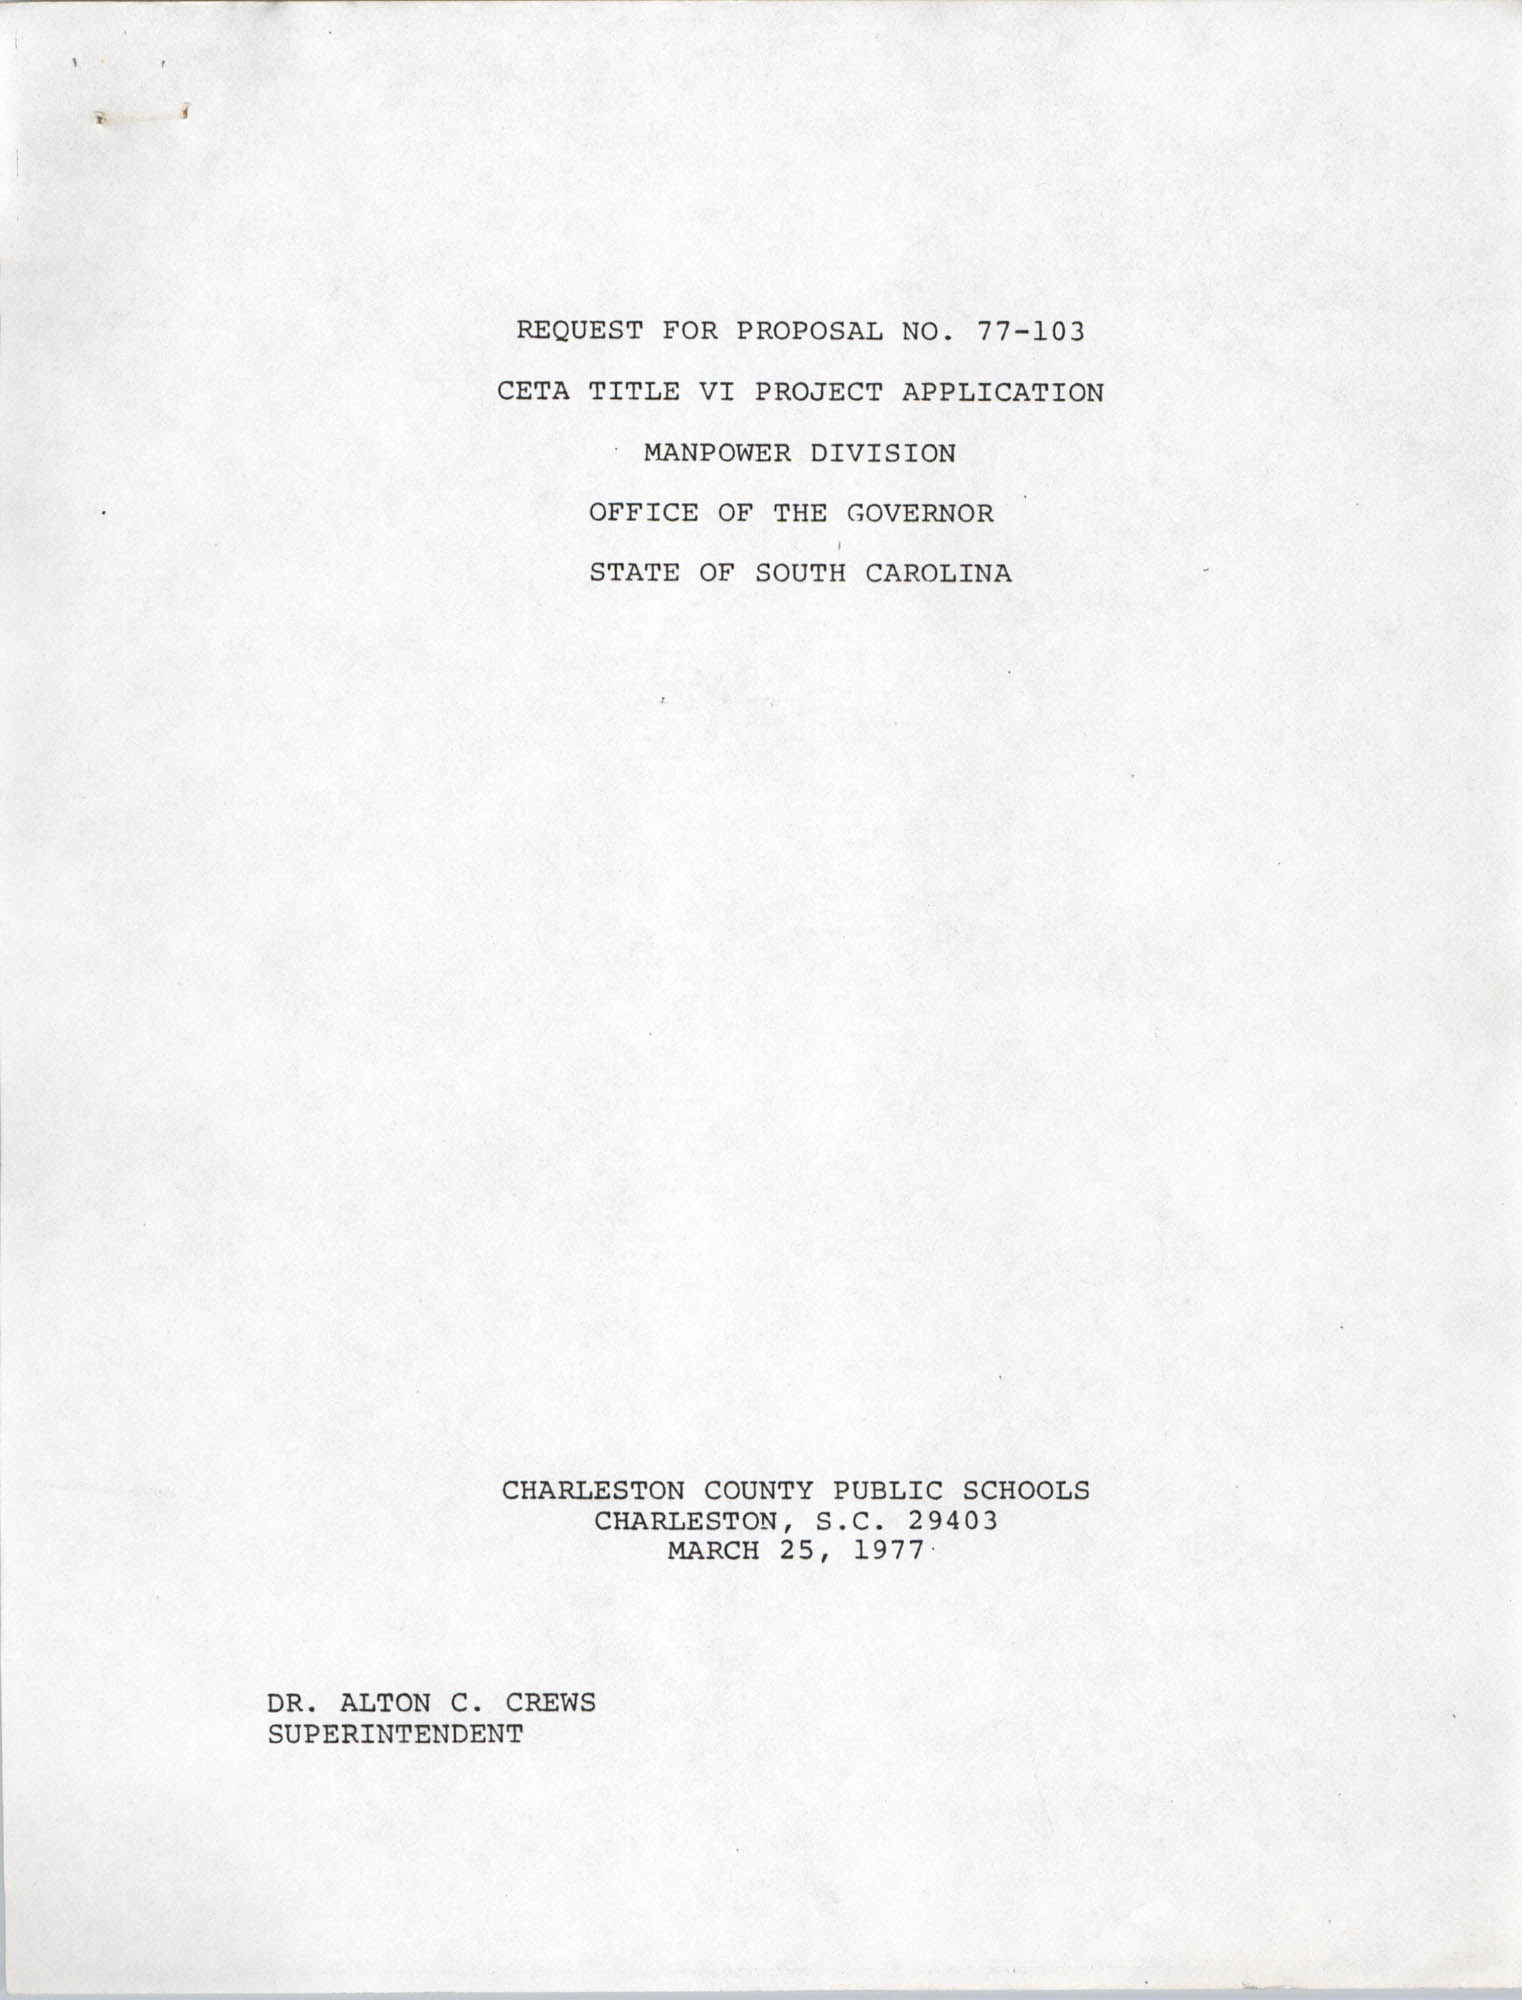 Request for Proposal No. 77-103, Title Page